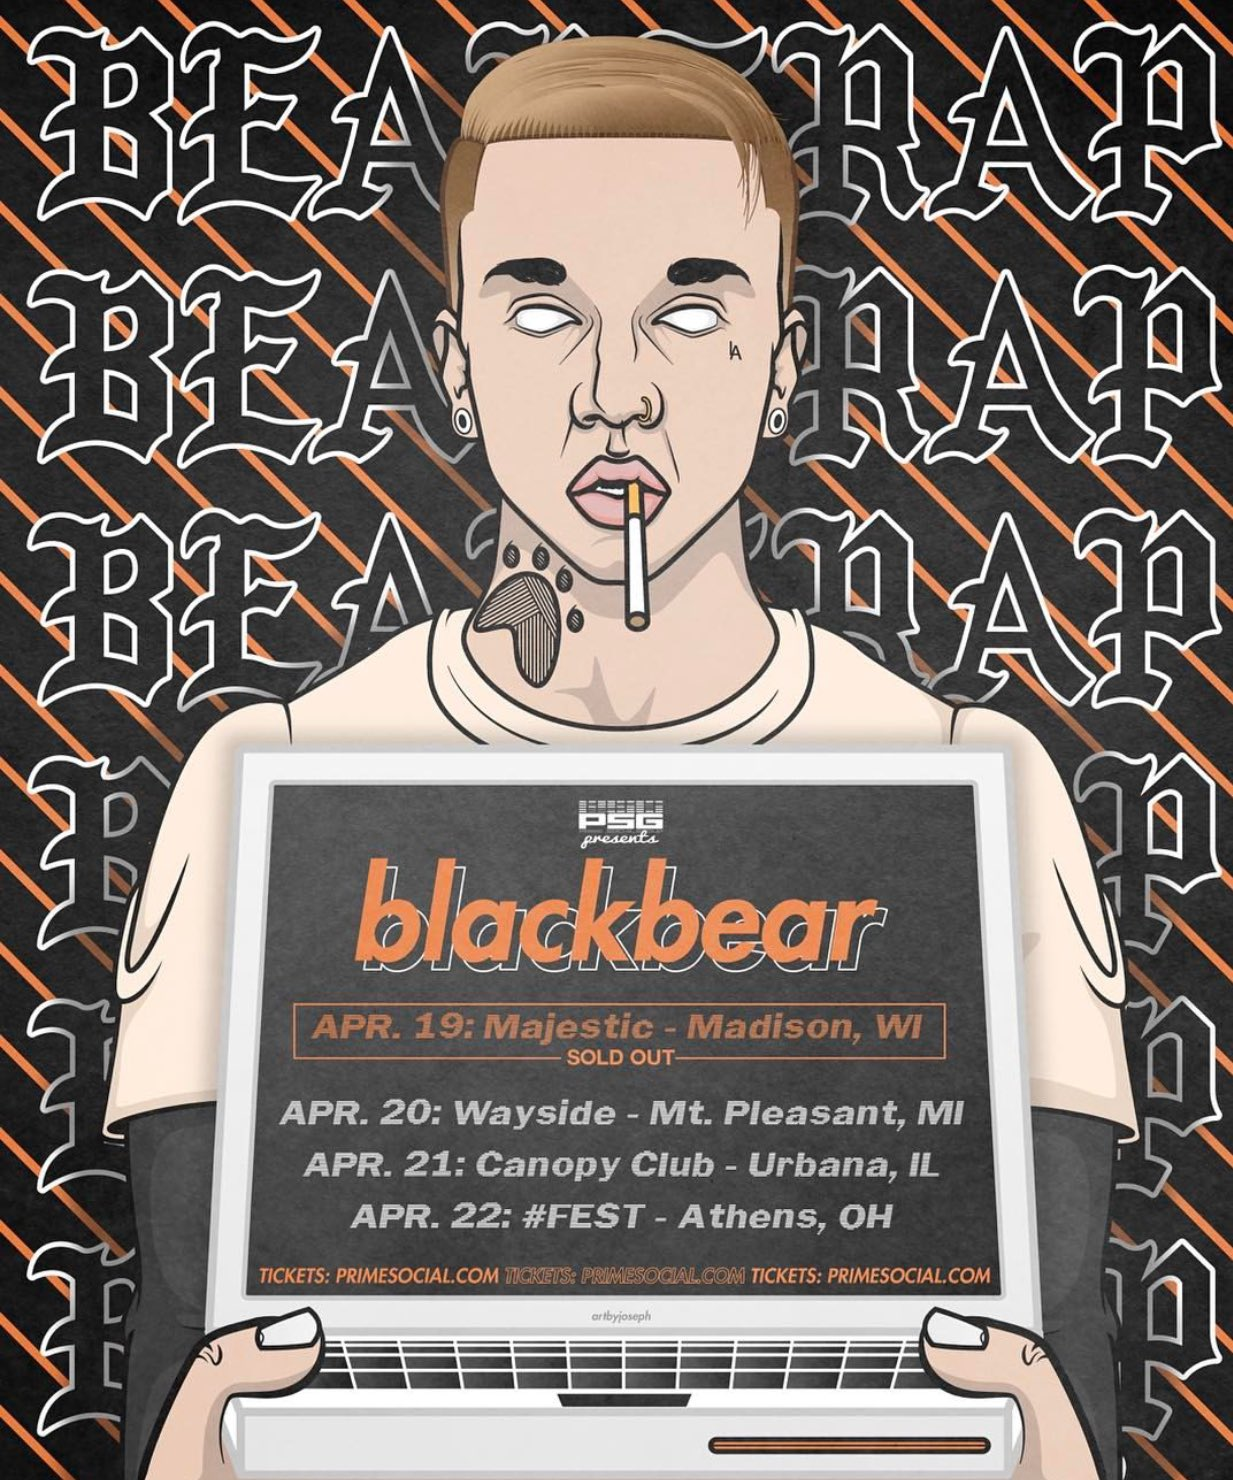 See @iamblackbear in the following cities this week! �� All tickets available at https://t.co/8gWDk9CJw7. https://t.co/HXnemziNJj